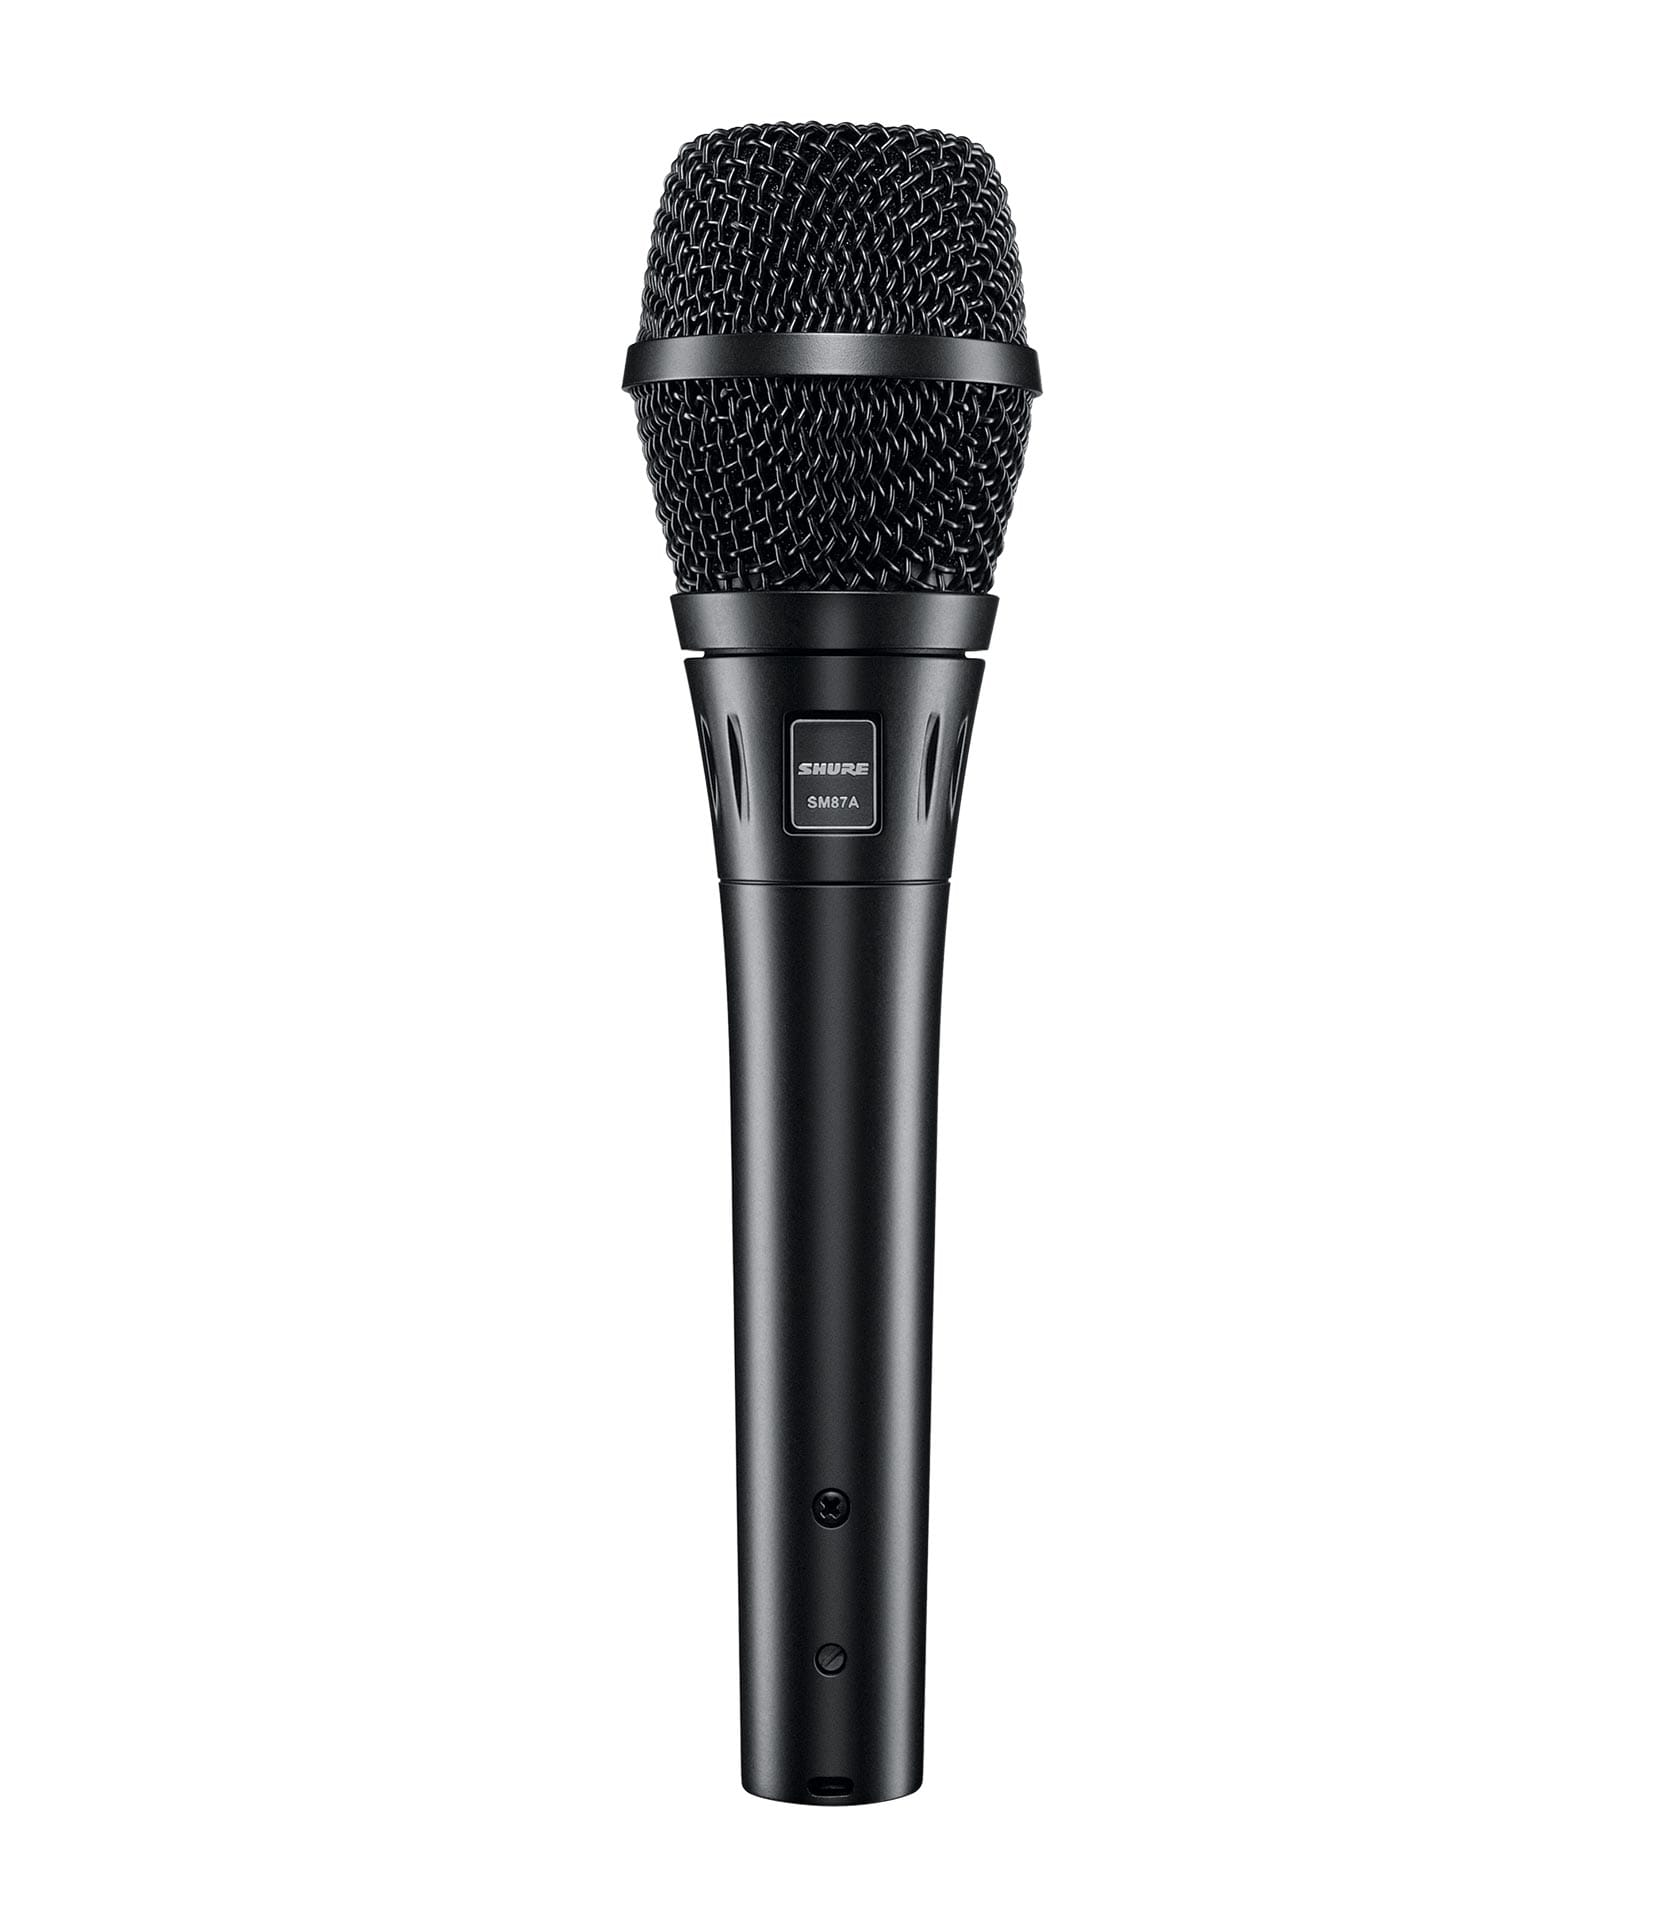 SM87A CONDENSER HAND HELD VOCAL MICROPHONE